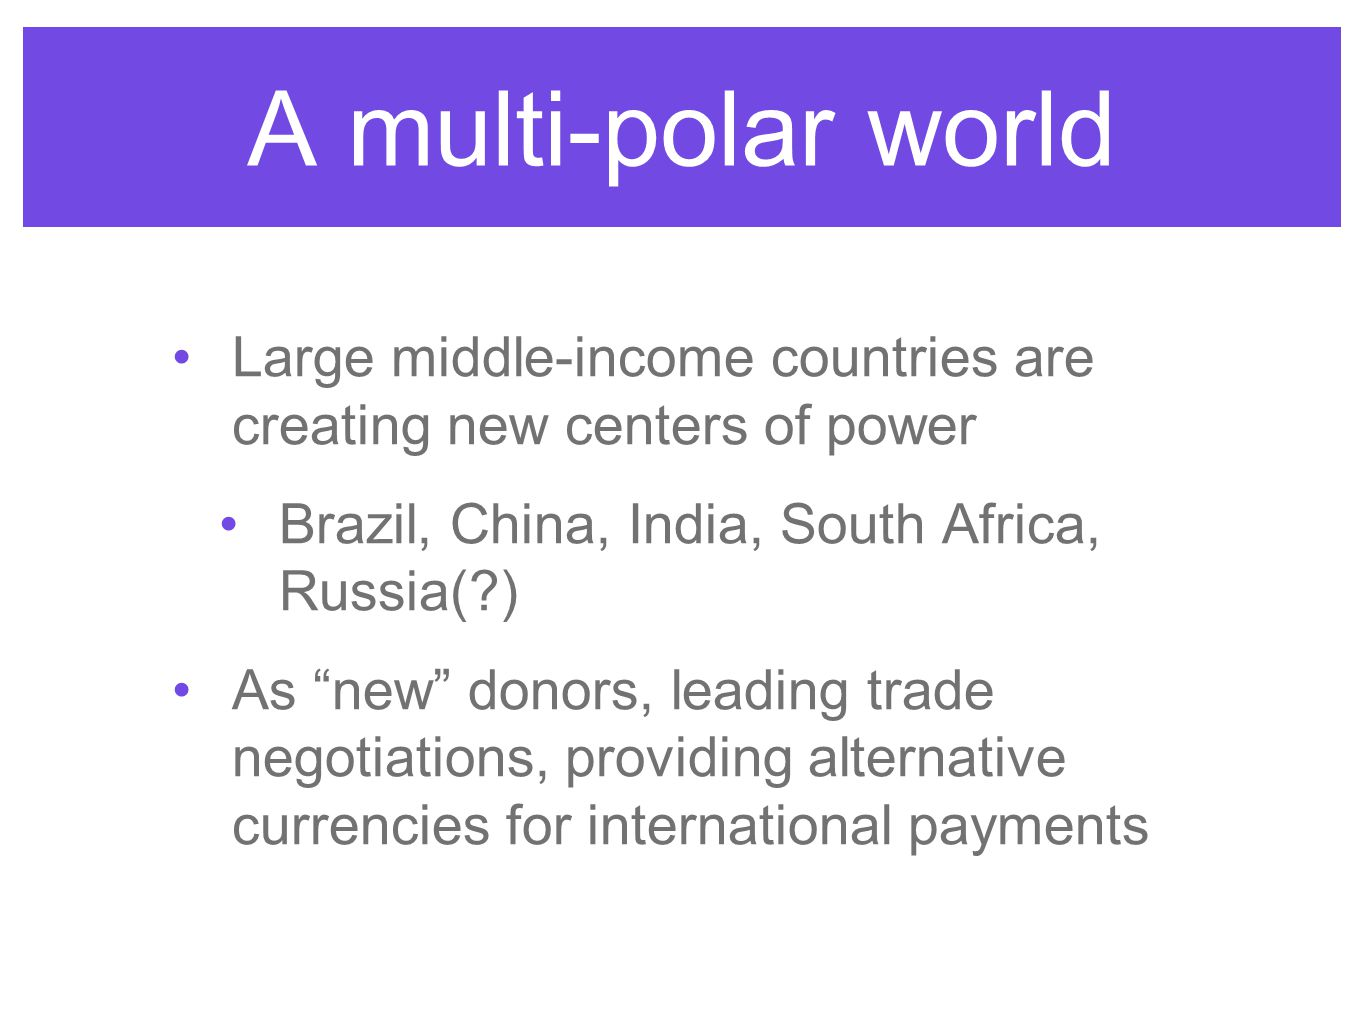 A multi-polar world Large middle-income countries are creating new centers of power Brazil, China, India, South Africa, Russia( ) As new donors, leading trade negotiations, providing alternative currencies for international payments